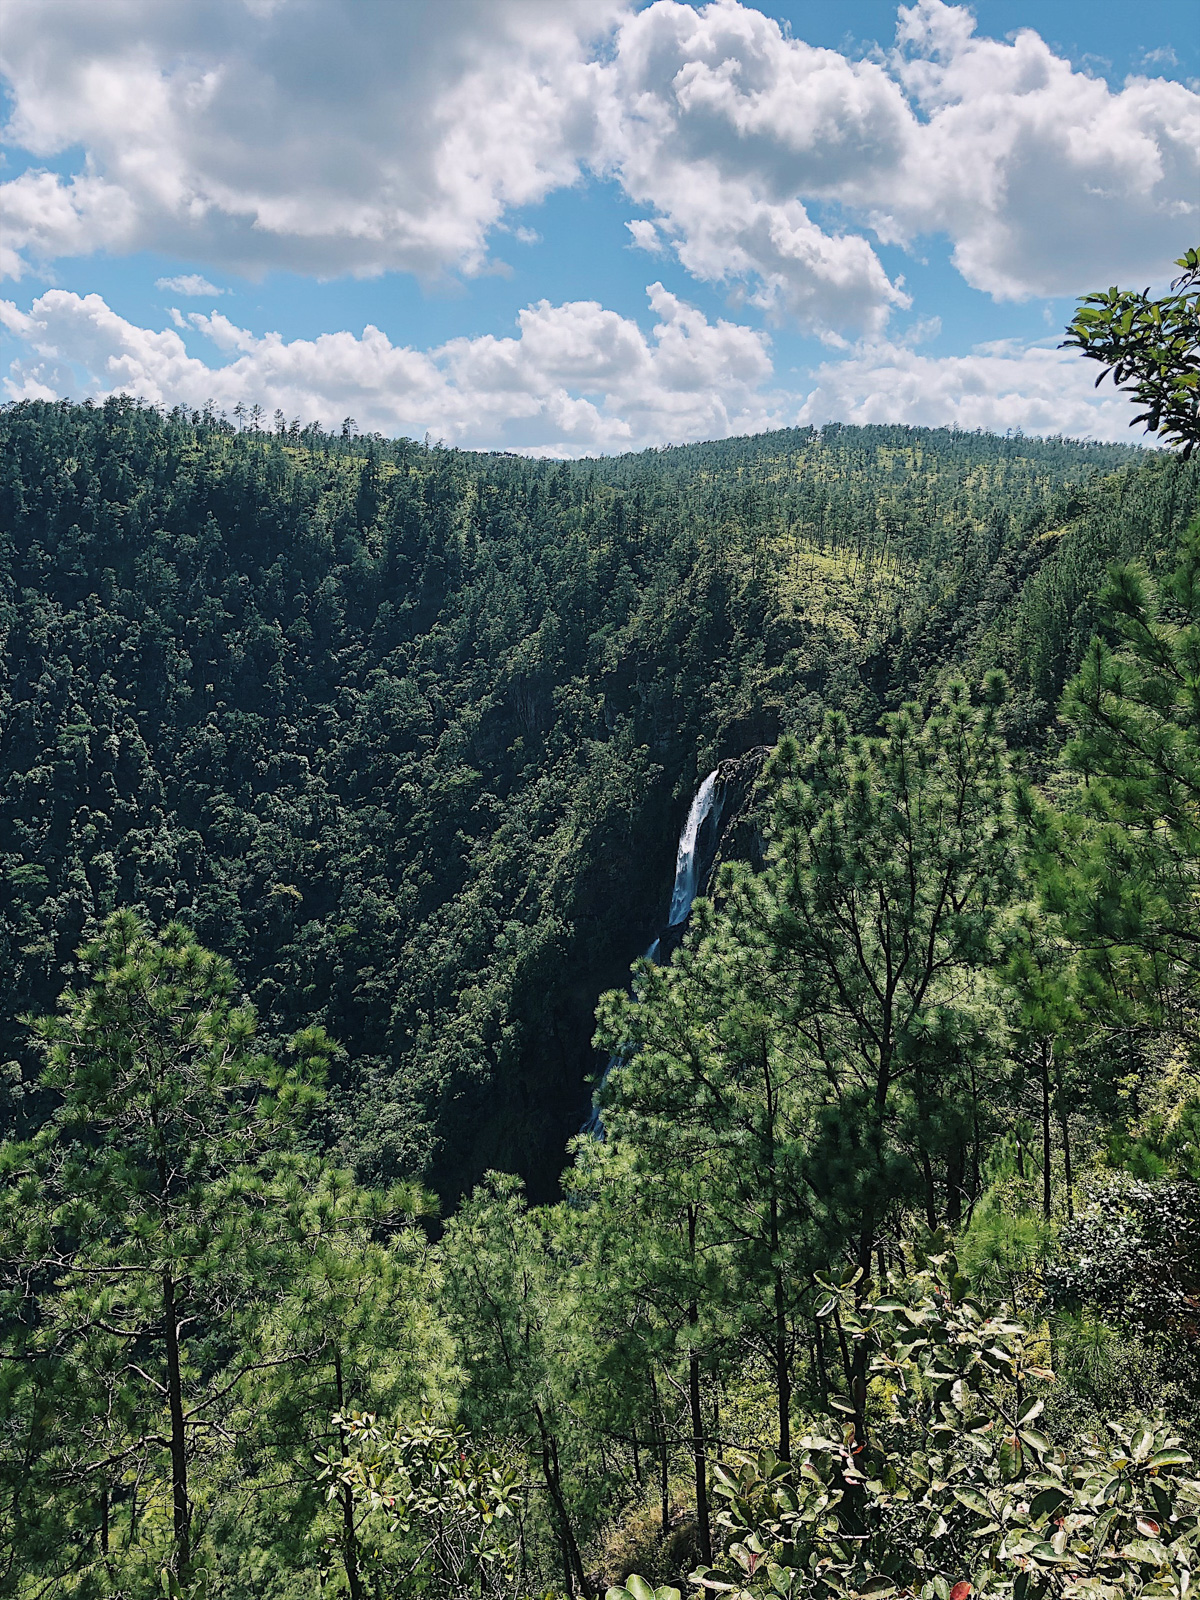 view of a forest with a waterfall in the background